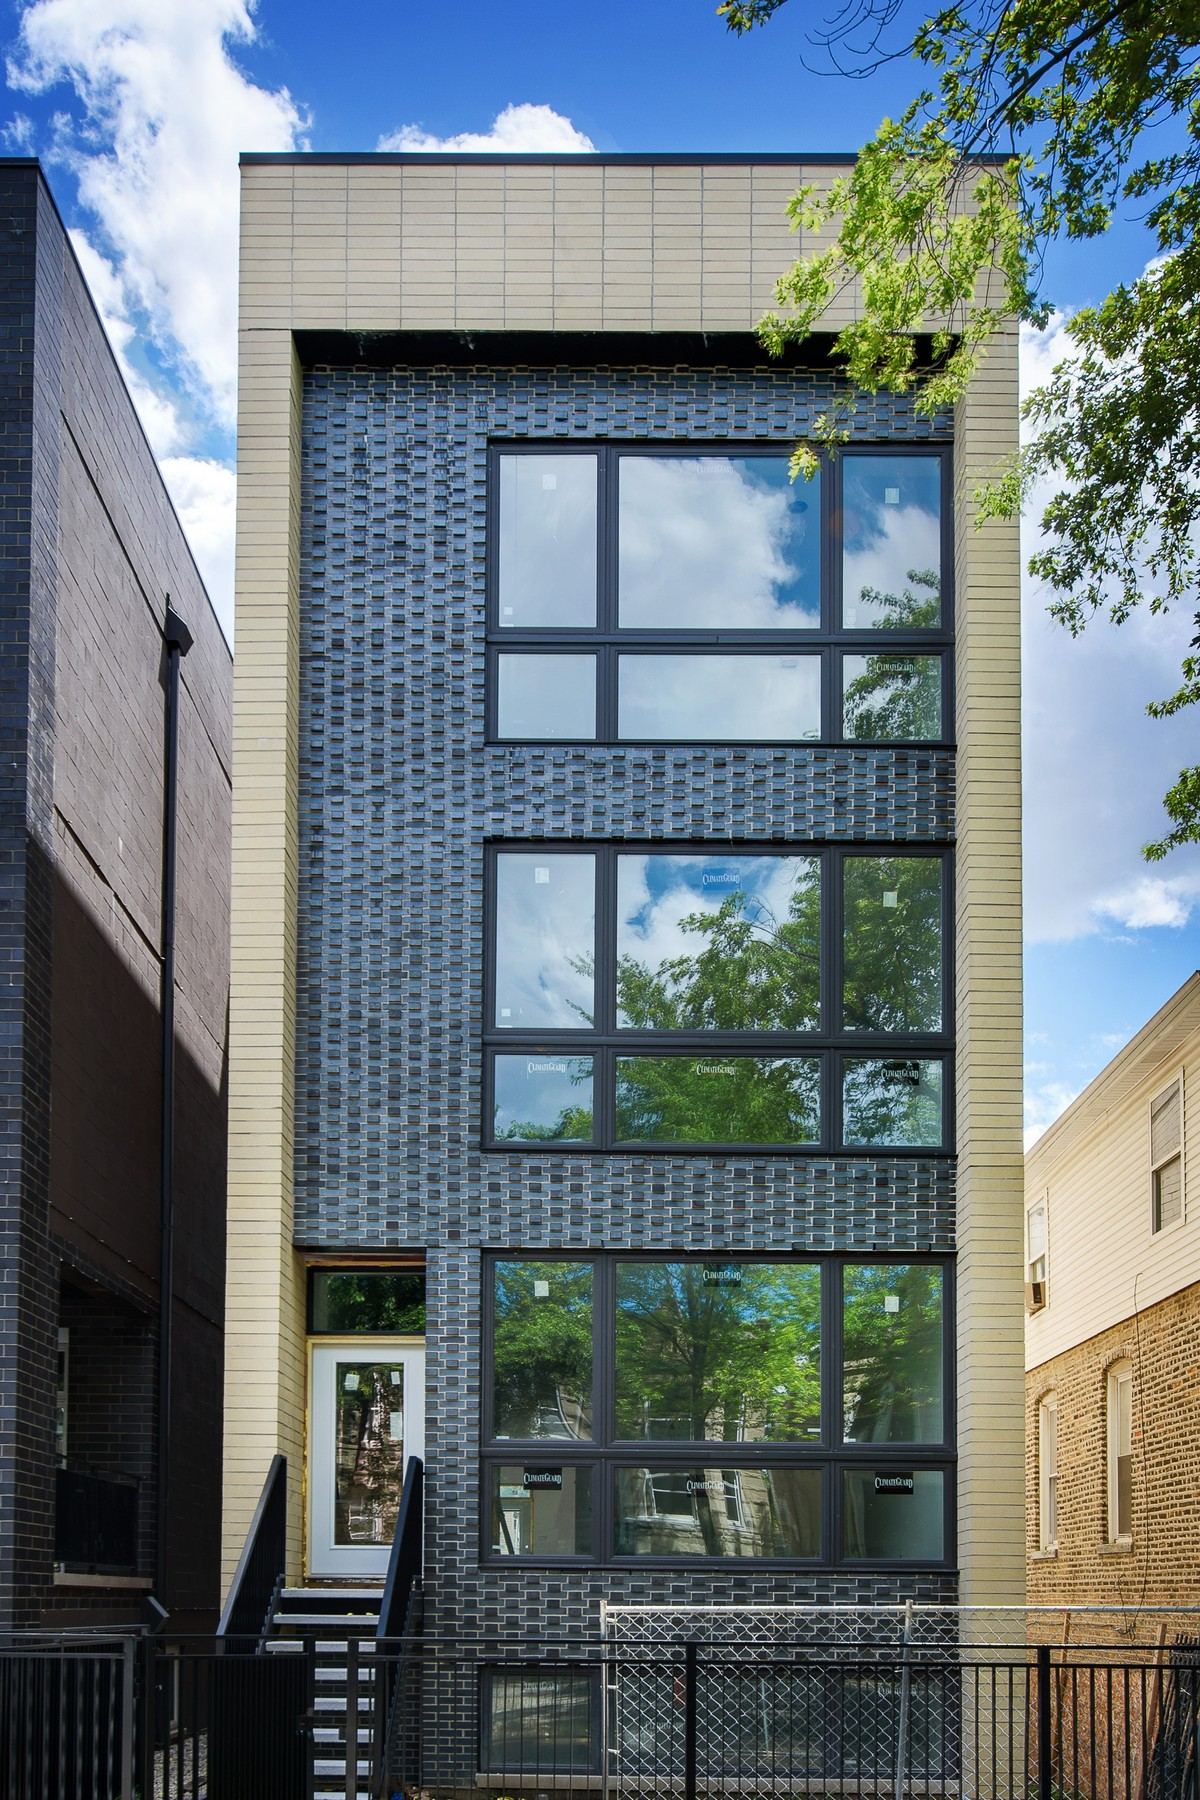 Condominium for Sale at Spacious Penthouse Unit in Three Unit New Construction Building 2441 W Haddon Avenue Unit 3 West Town, Chicago, Illinois, 60622 United States